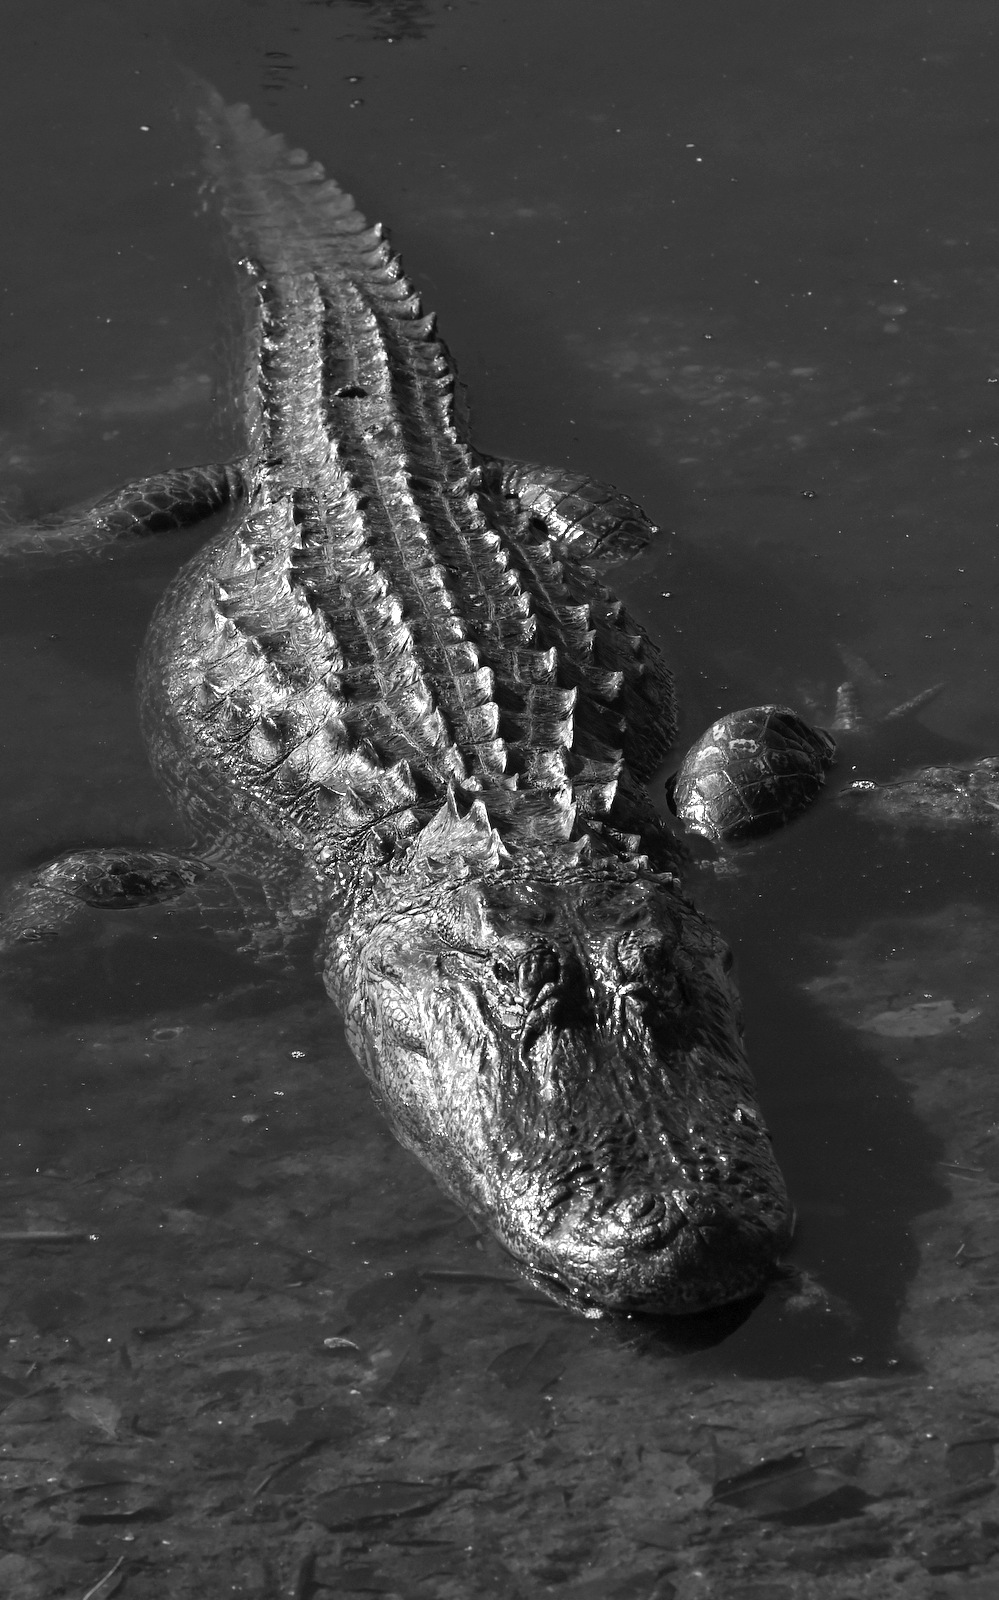 Alligator, Florida (3890)